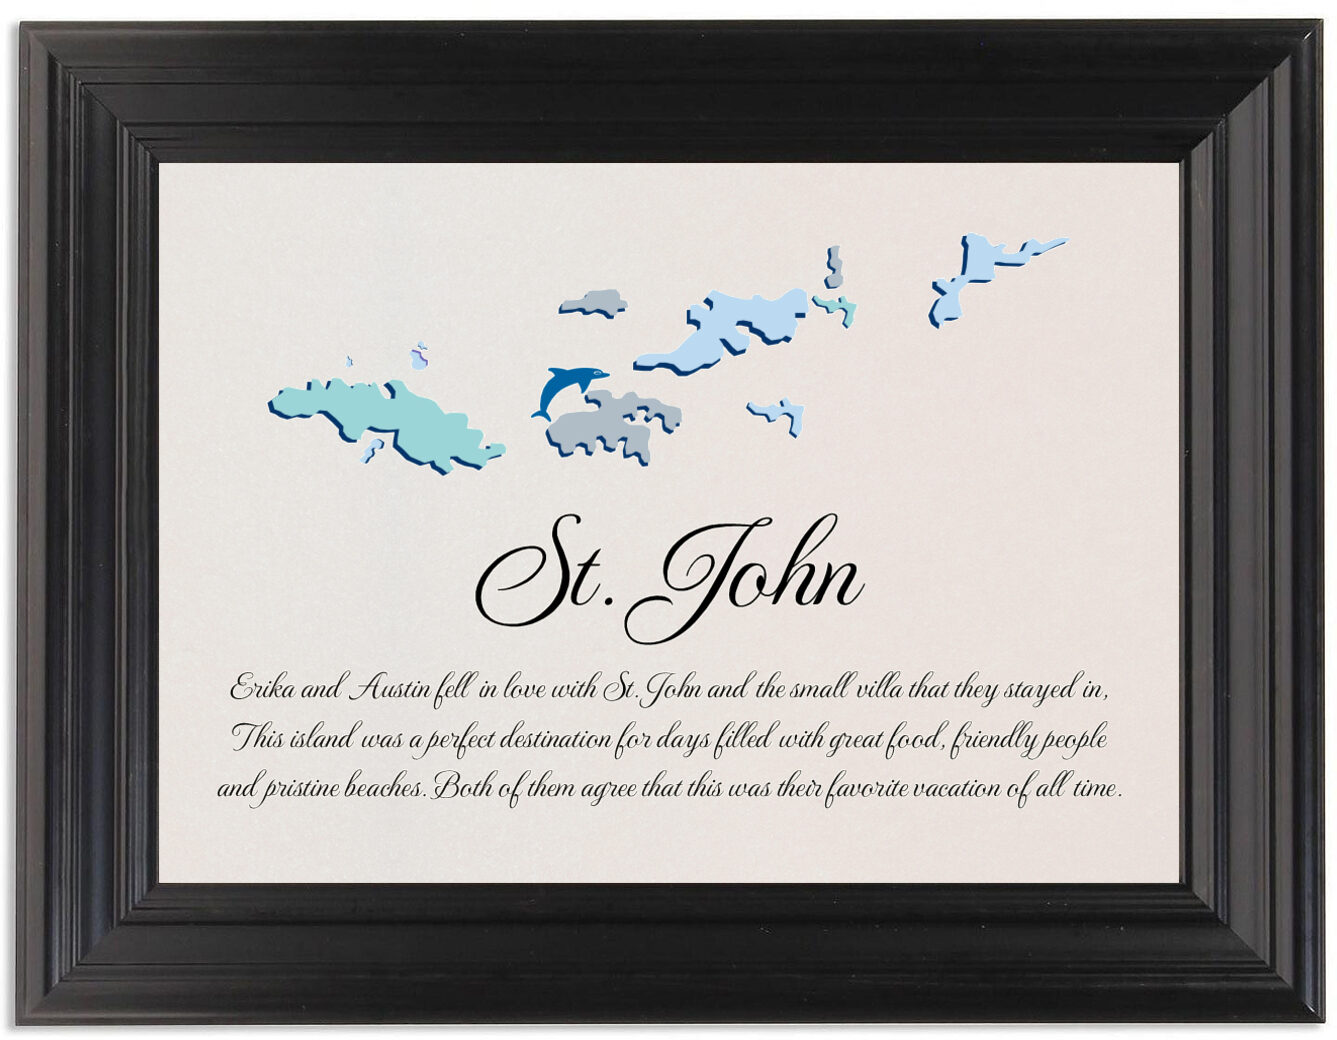 Framed Photograph of Map of the Virgin Islands 2 Memorabilia Cards